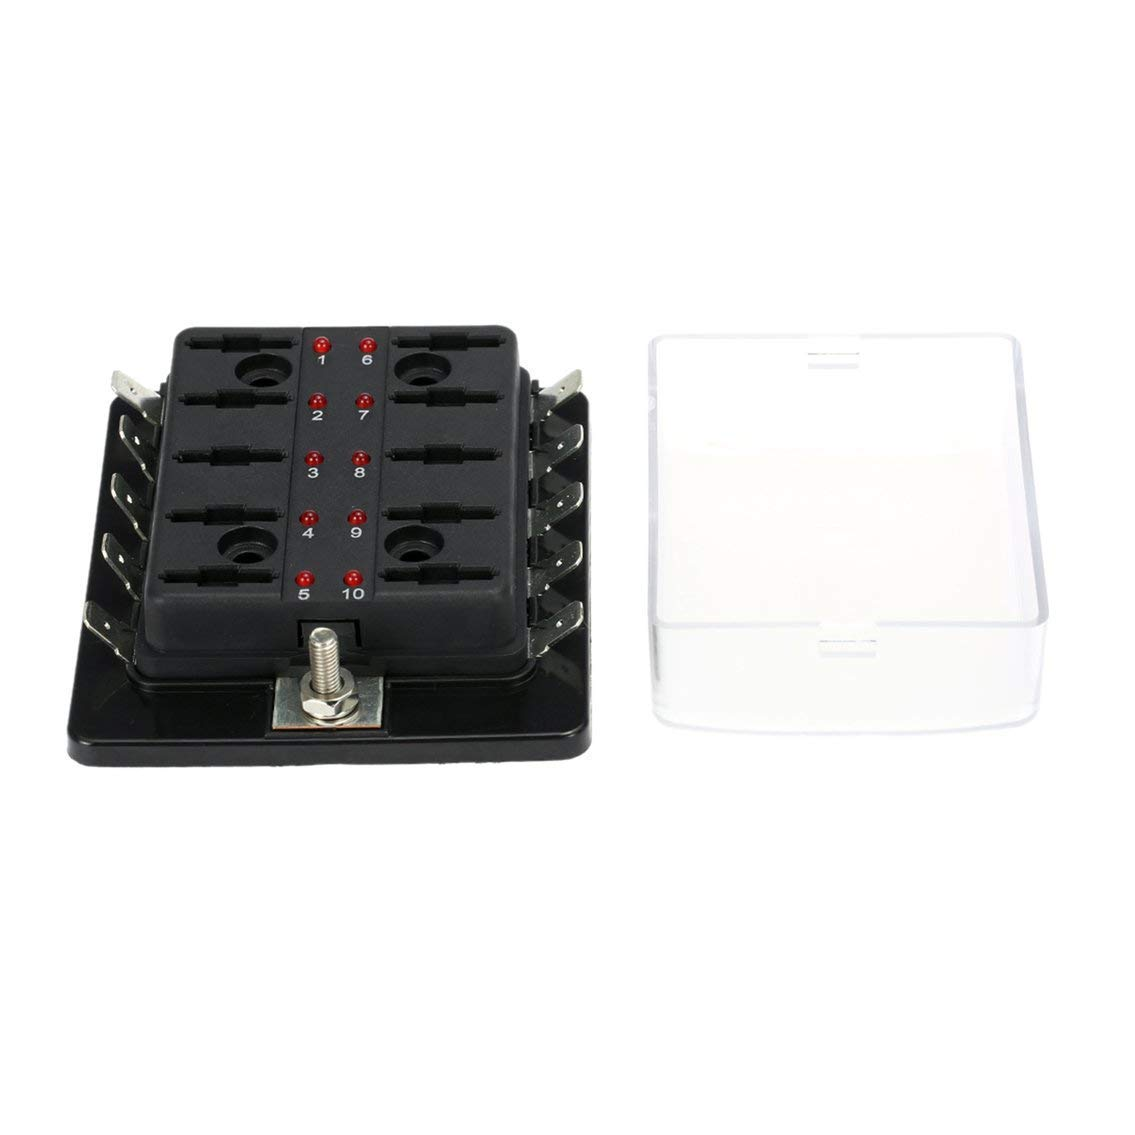 hight resolution of get quotations mazur 10 way car blade fuse box holder with red led warning light for car vehicle